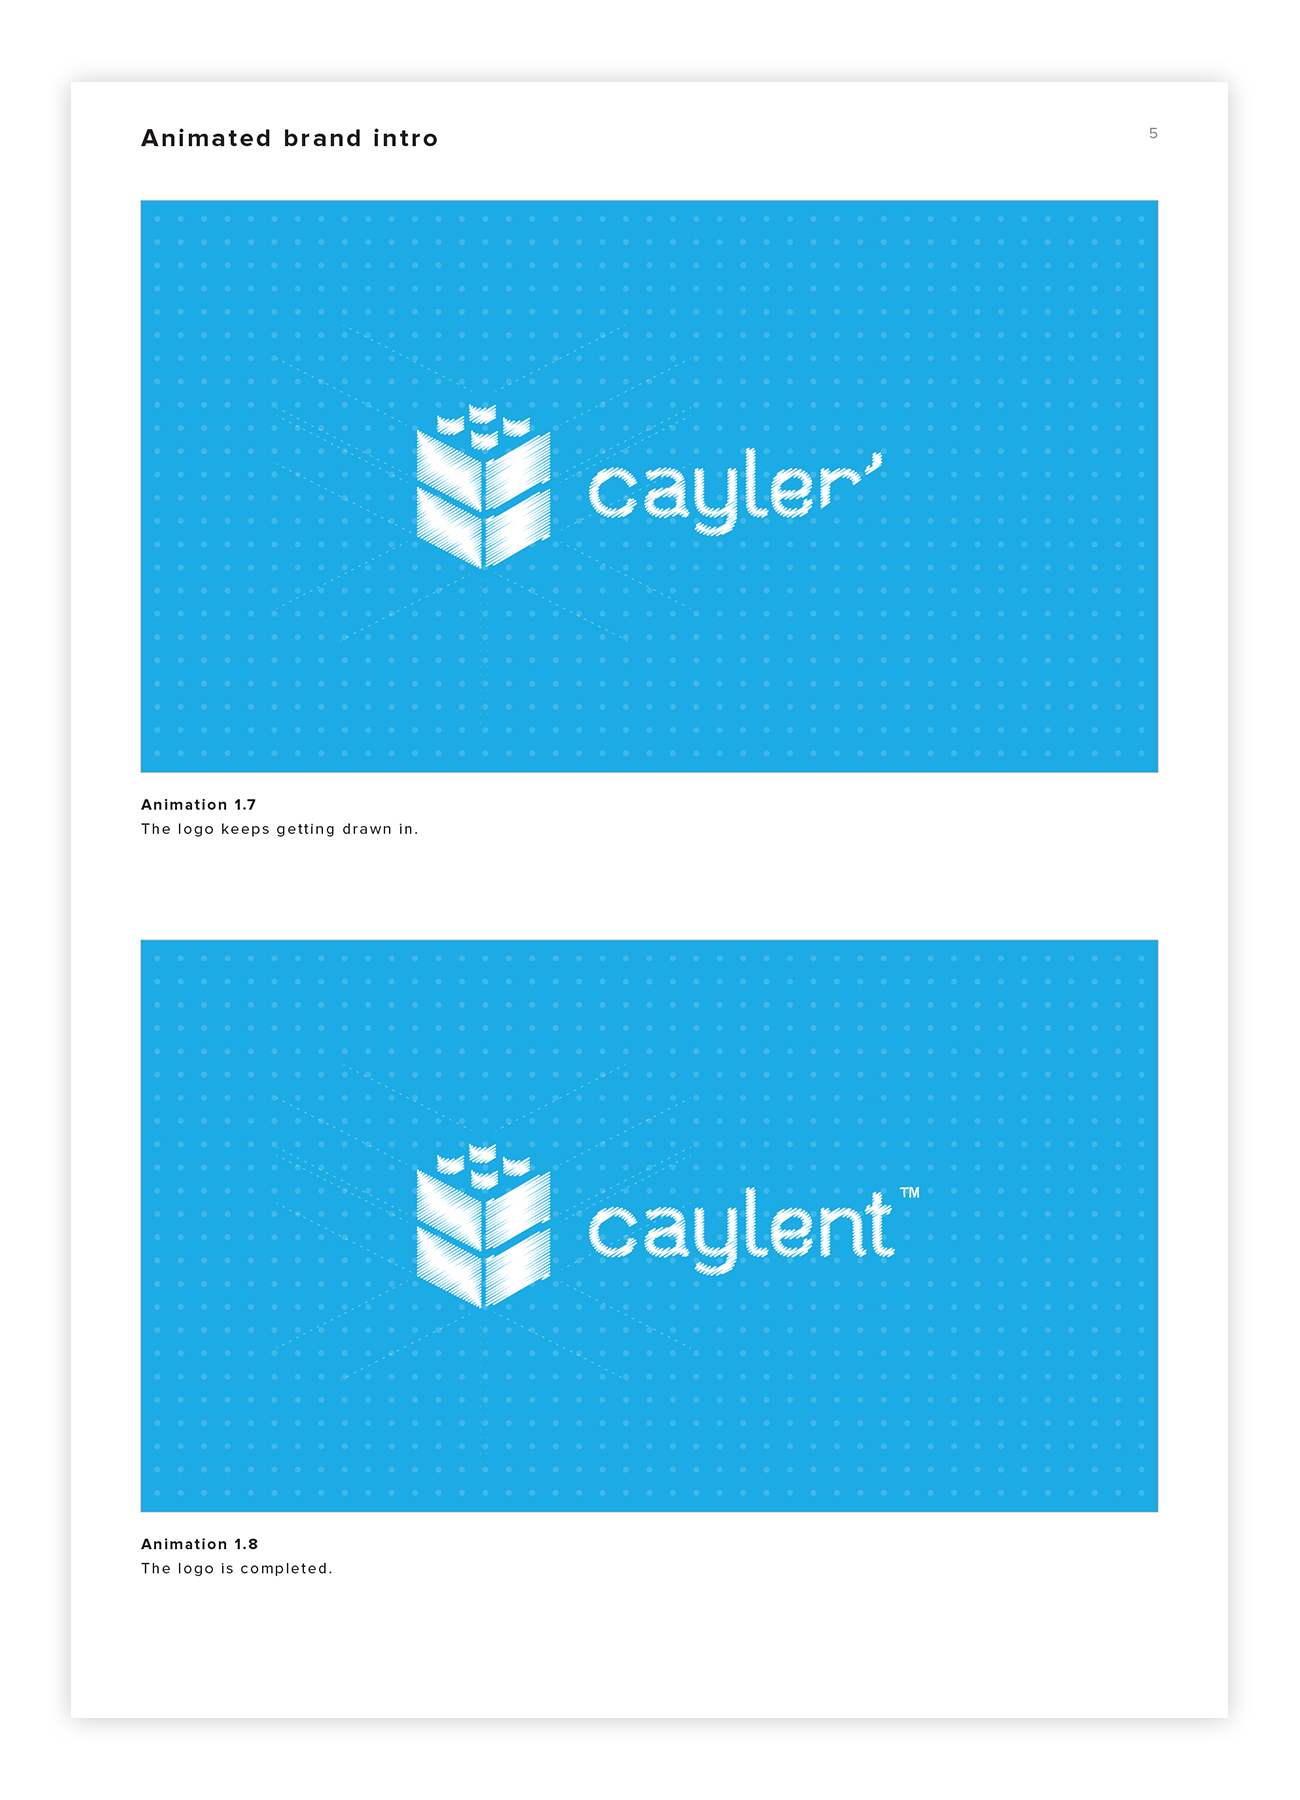 Caylent_Animated_Brand_Intro_Presentation.4.jpg